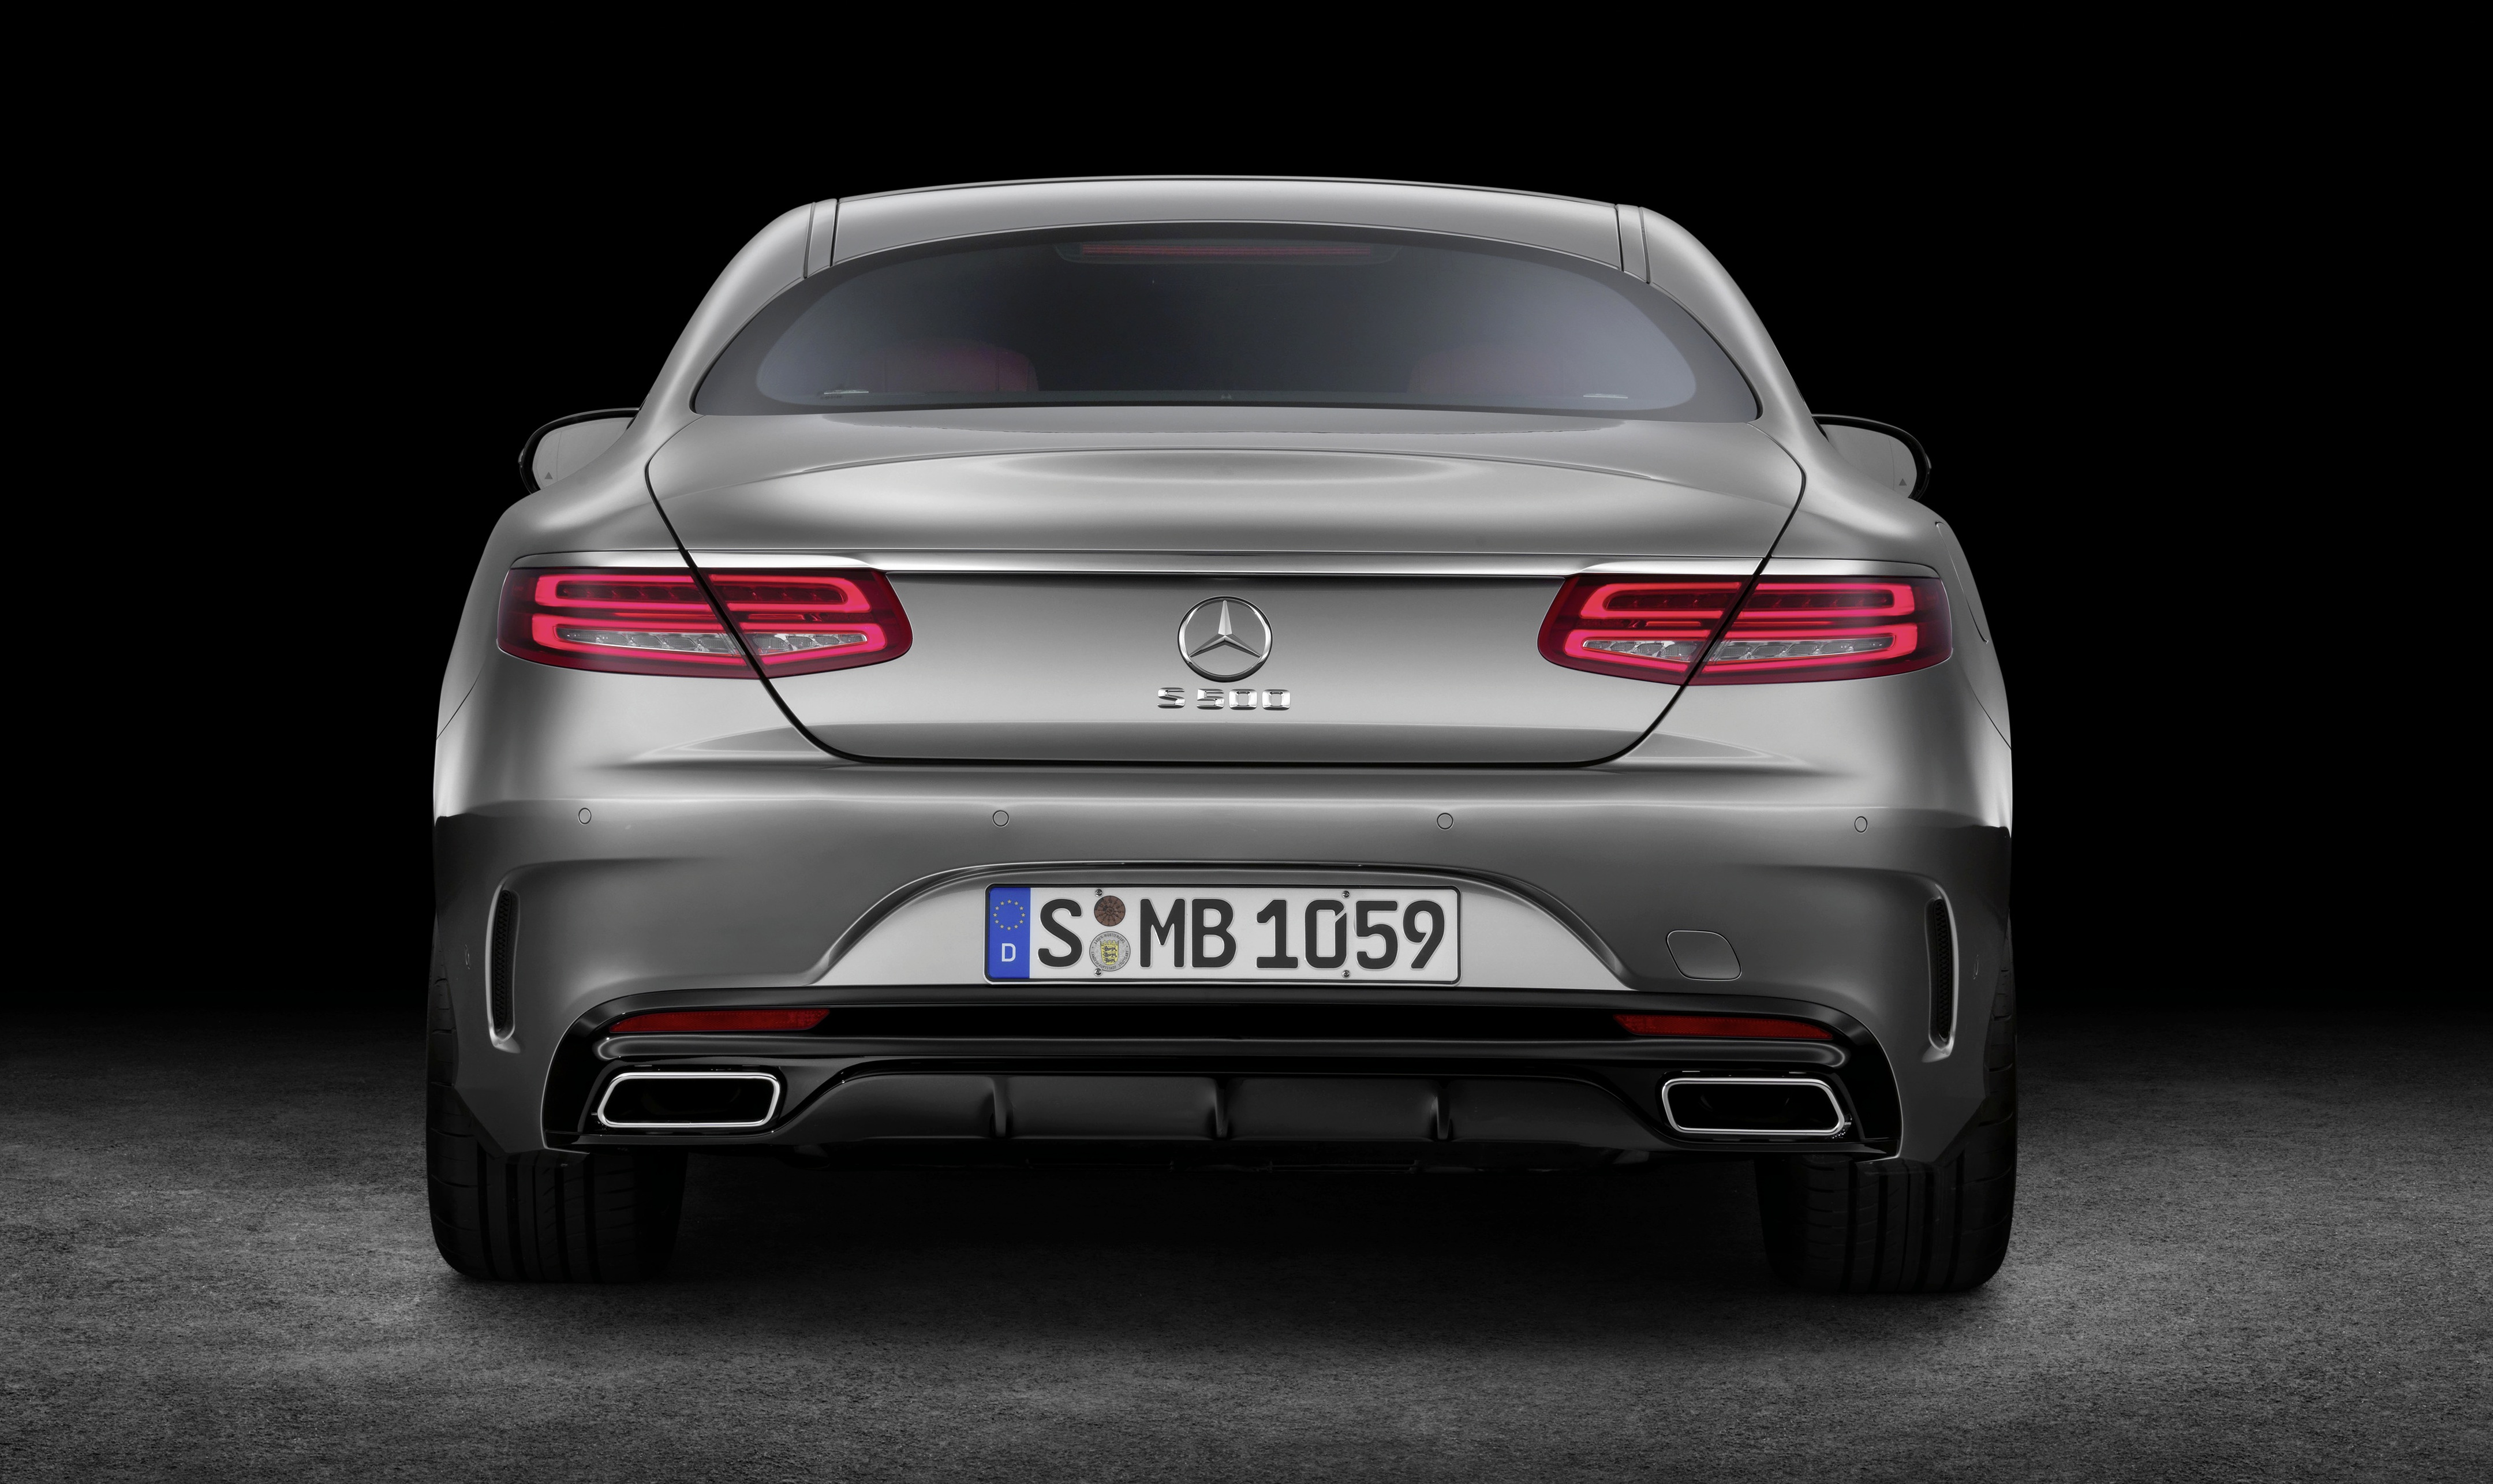 Mercedes Benz S Class Coupe Crystal Clear Details Image